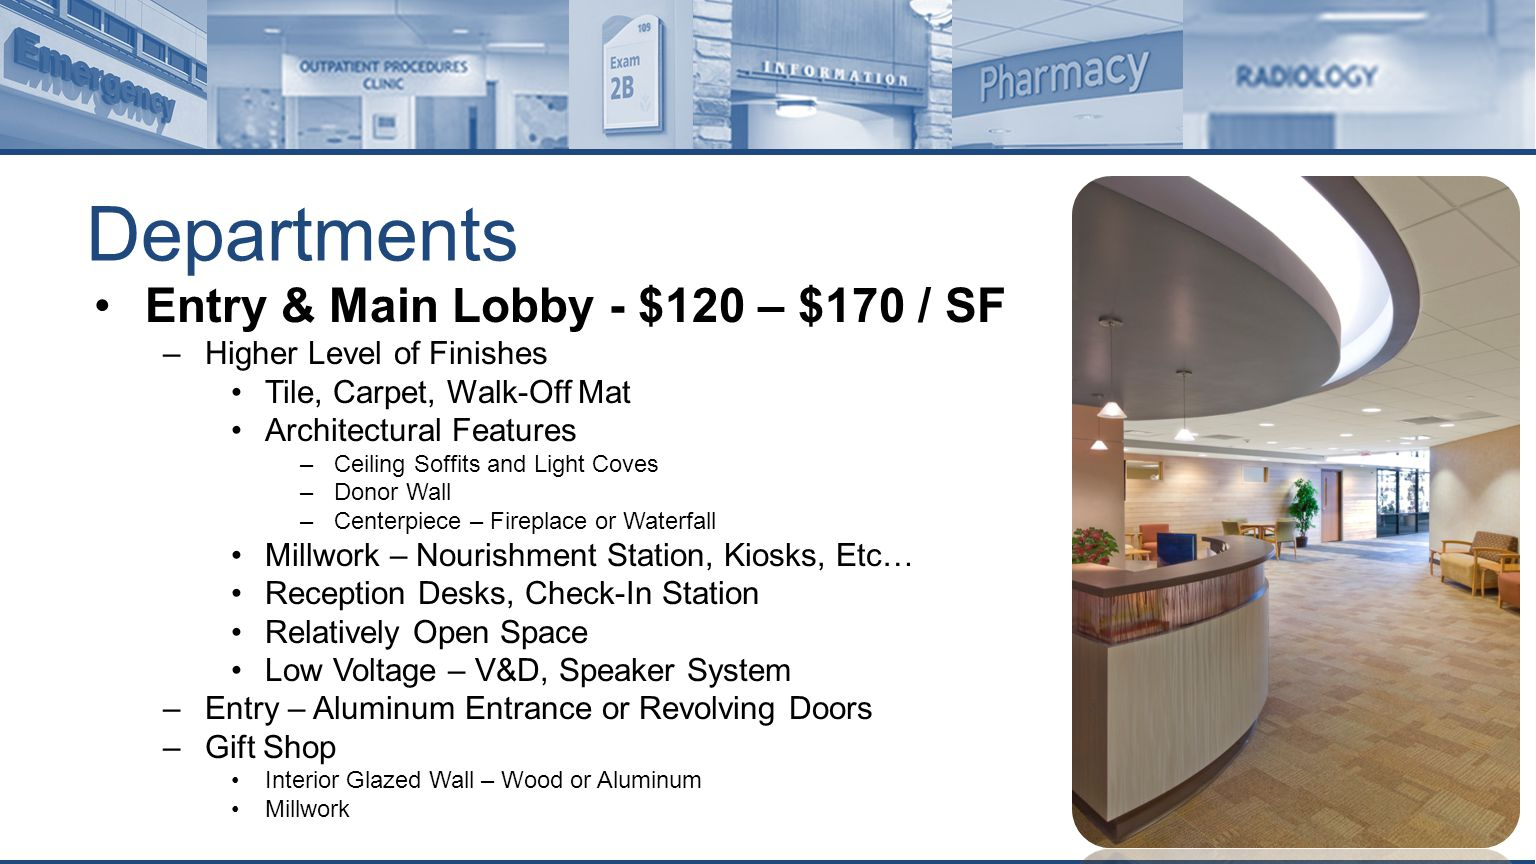 Departments Lab Space & Pharmacy - $215 – $265 / SF –Generally, Large Open Spaces –Level of Finishes Varies – Standard to Sterile –Laboratory Casework – By Owner or GC –Pharmacy Casework – Split Retail Counters vs.